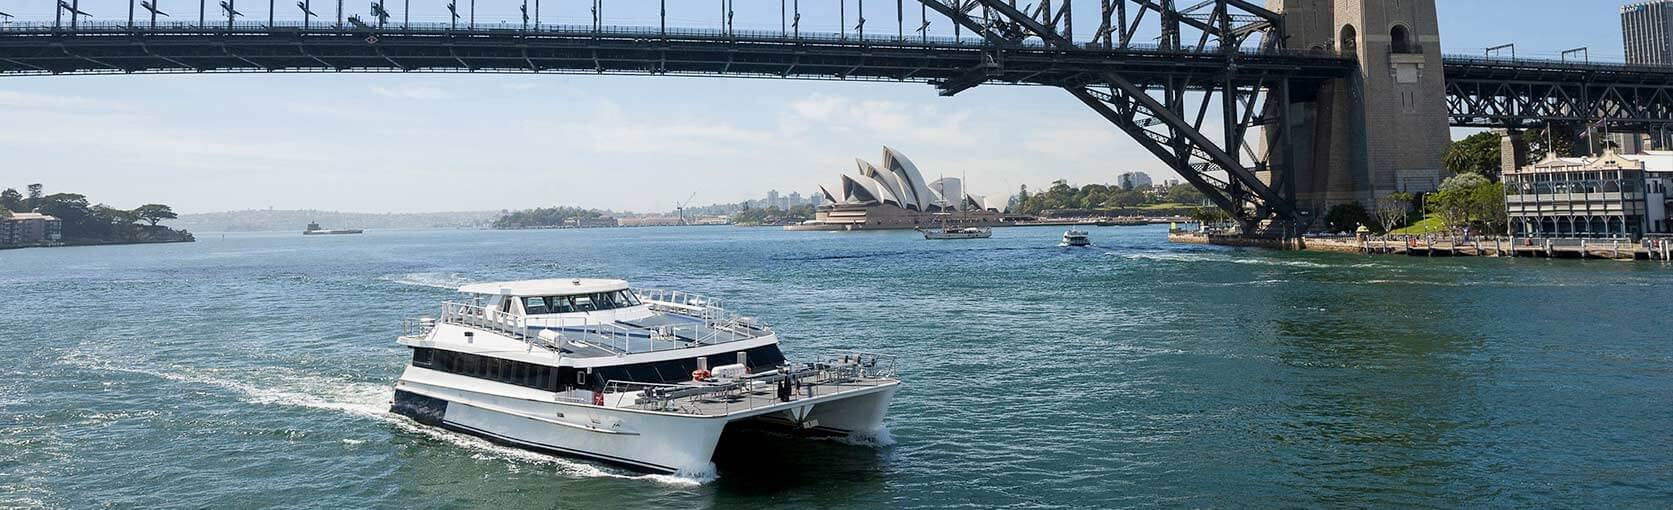 Boxing Day Cruise on Sydney Harbour